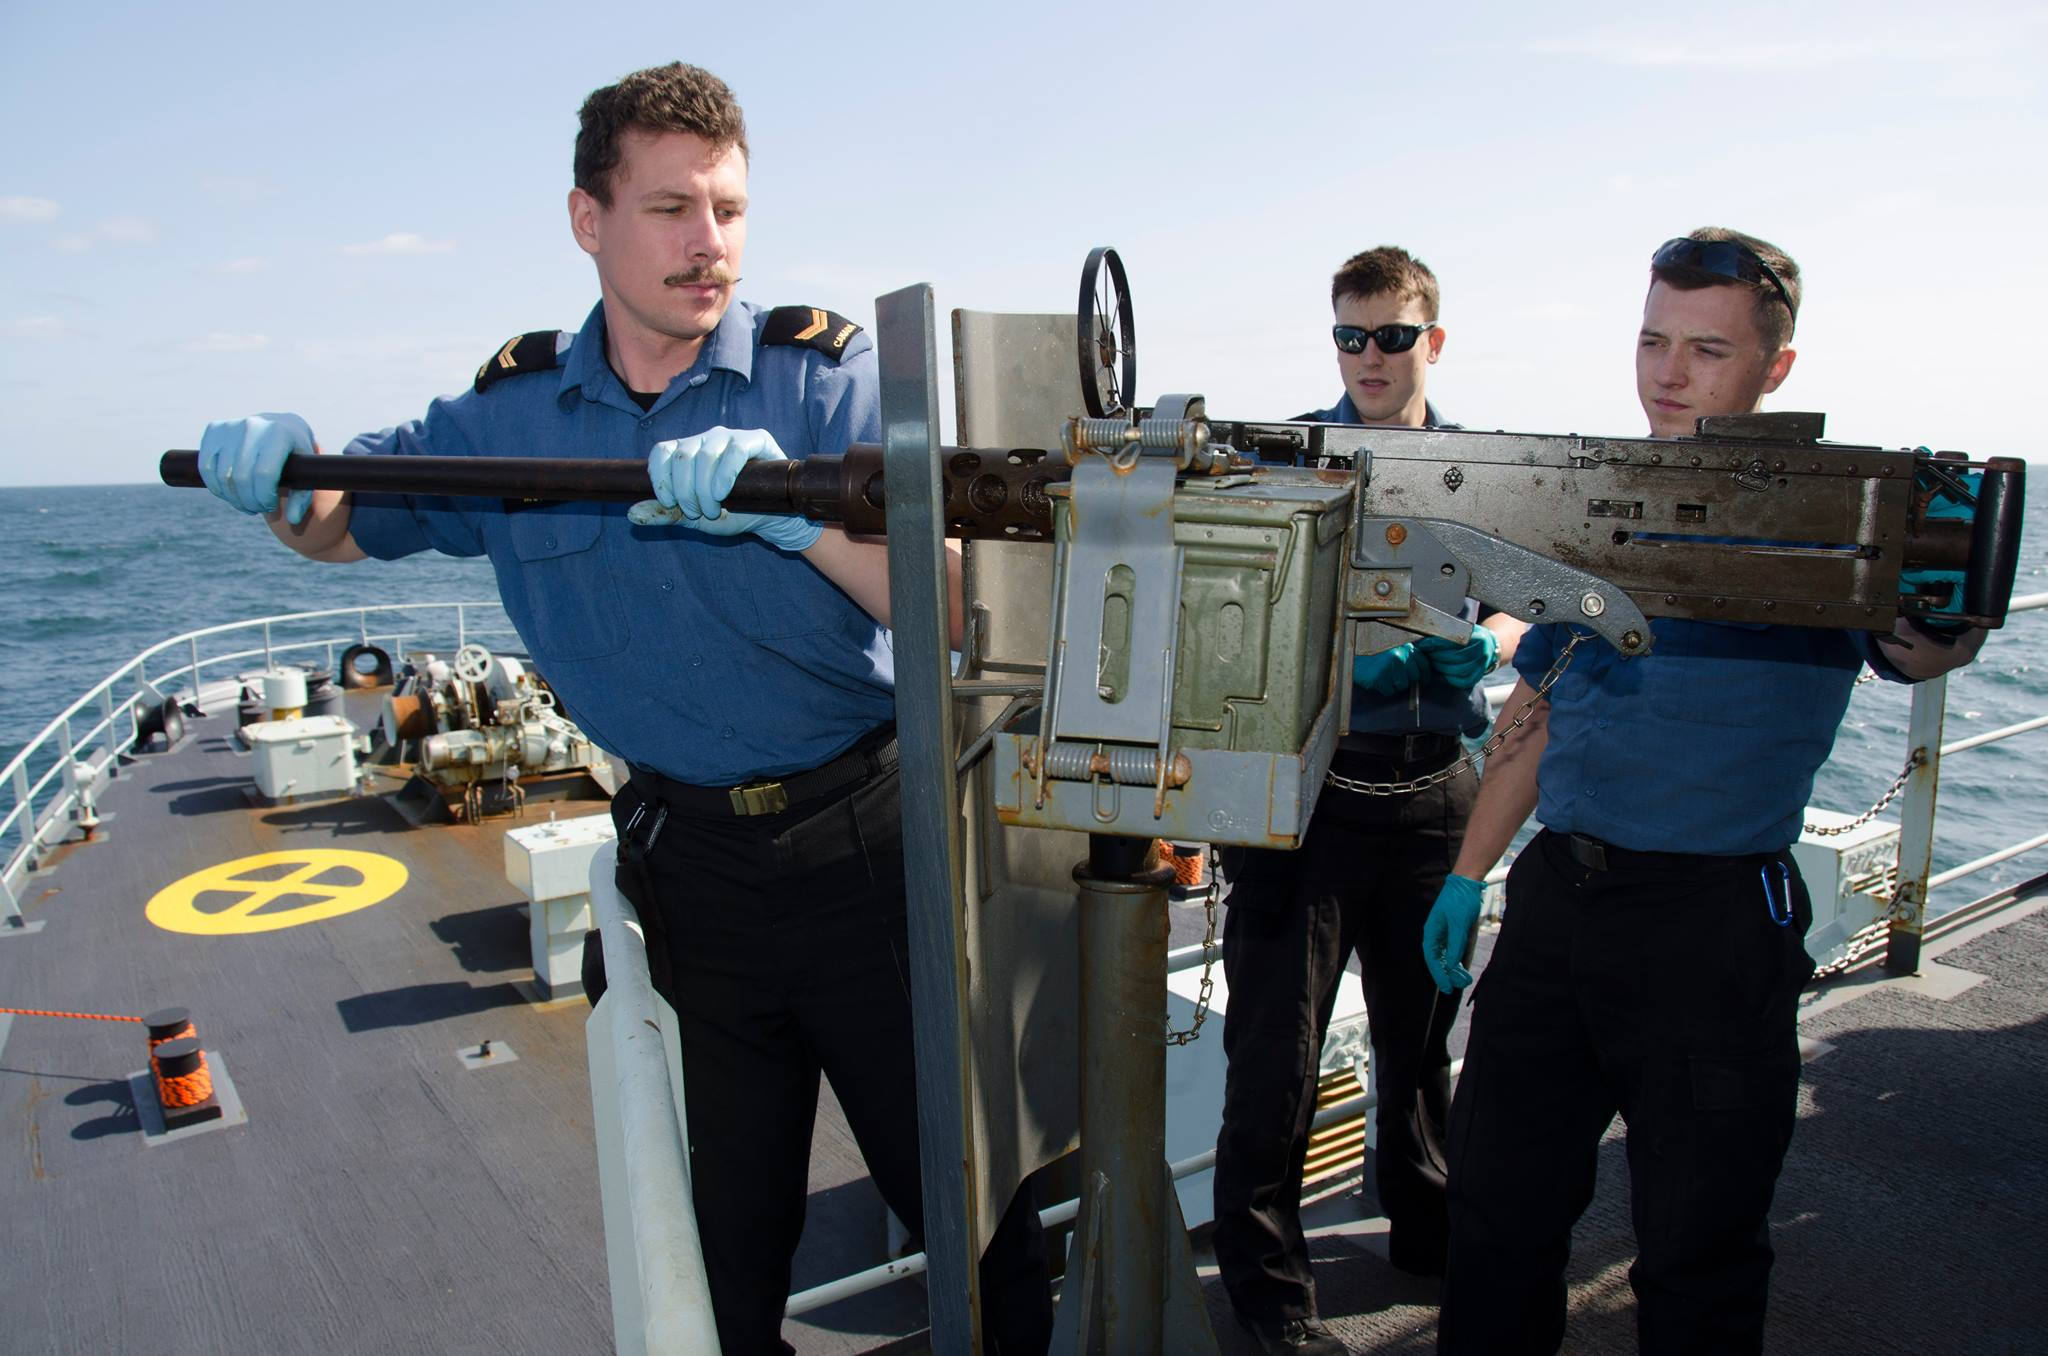 LS Laurent Morin along with two other Boatswains maintain HMCS Summerside's .50 Cal Machine-Gun while on Operation CARIBBE